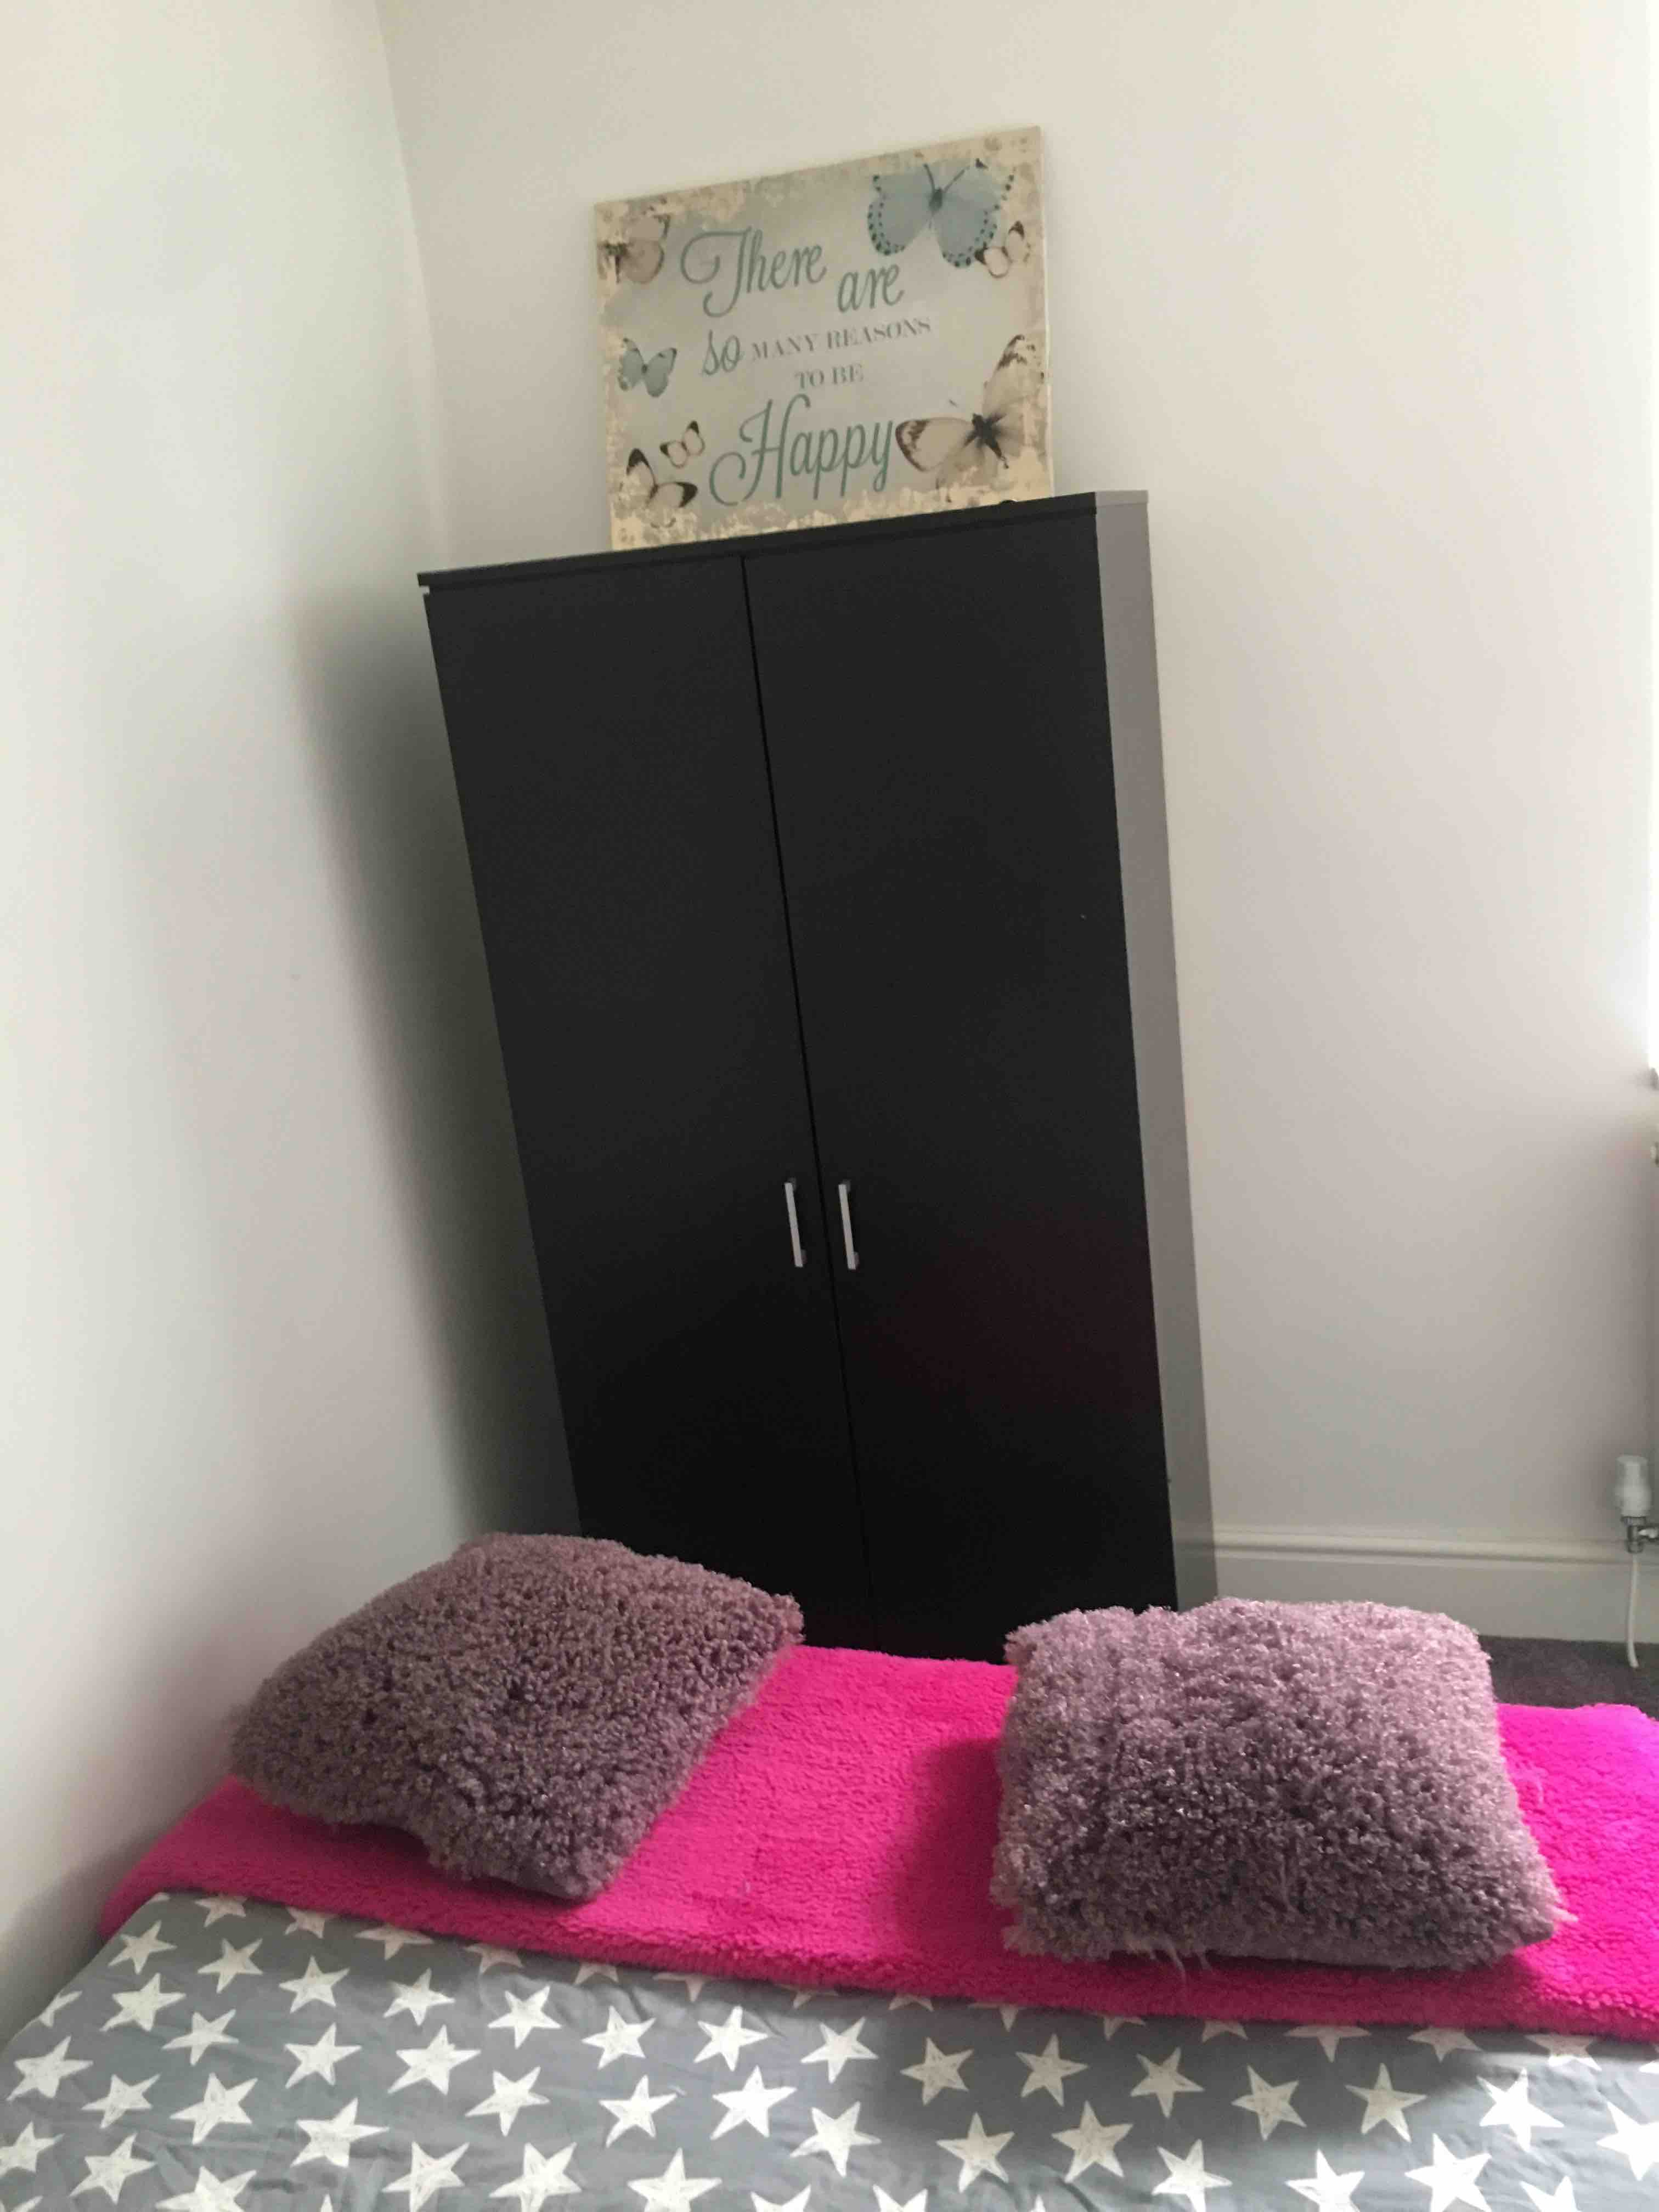 2 rooms in Clubmoor, Anfield, L46SG RoomsLocal image